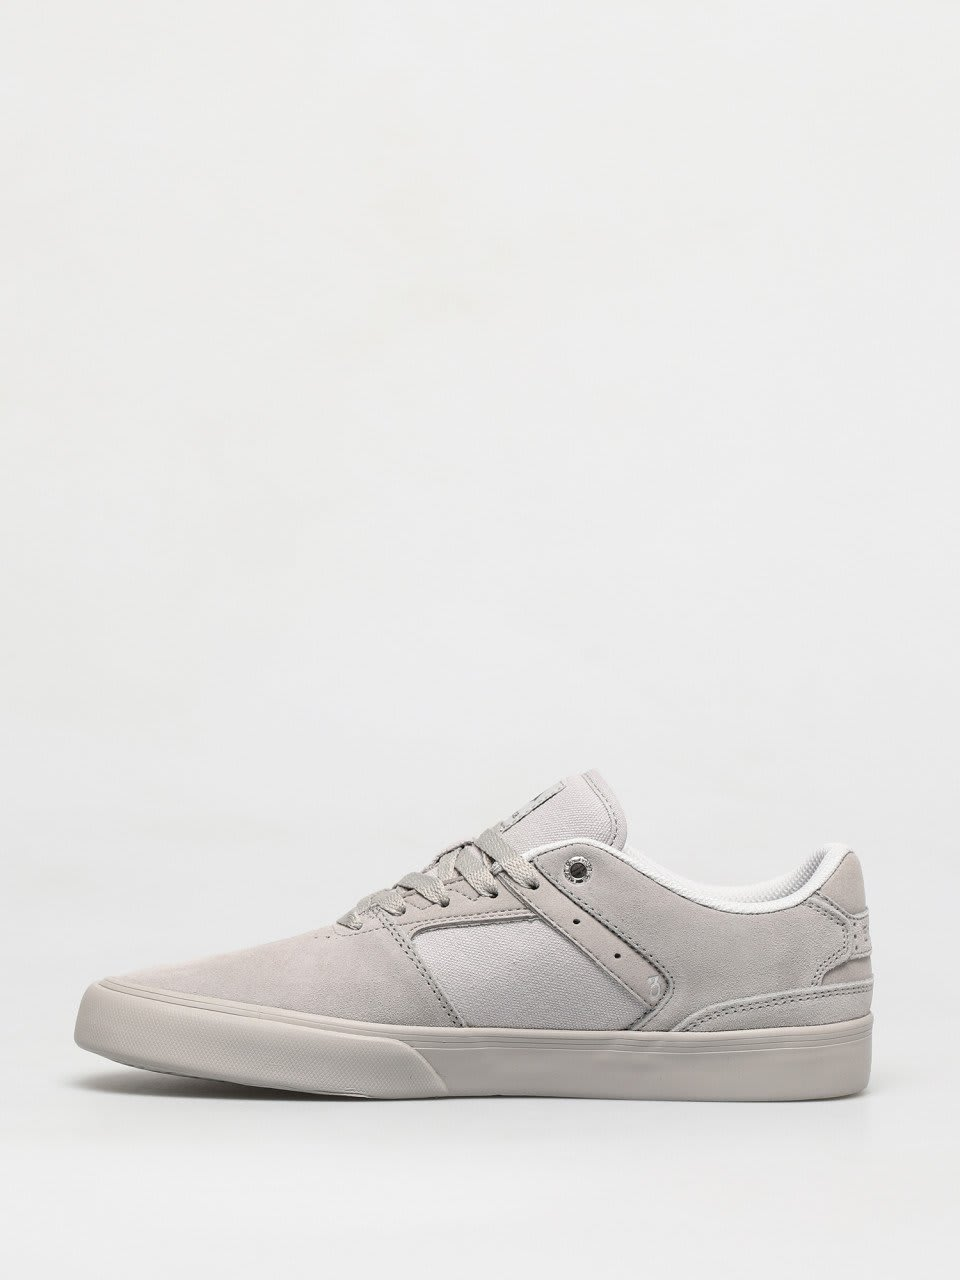 Emerica The Low Vulc Skate Shoes - Grey | Shoes by Emerica 2